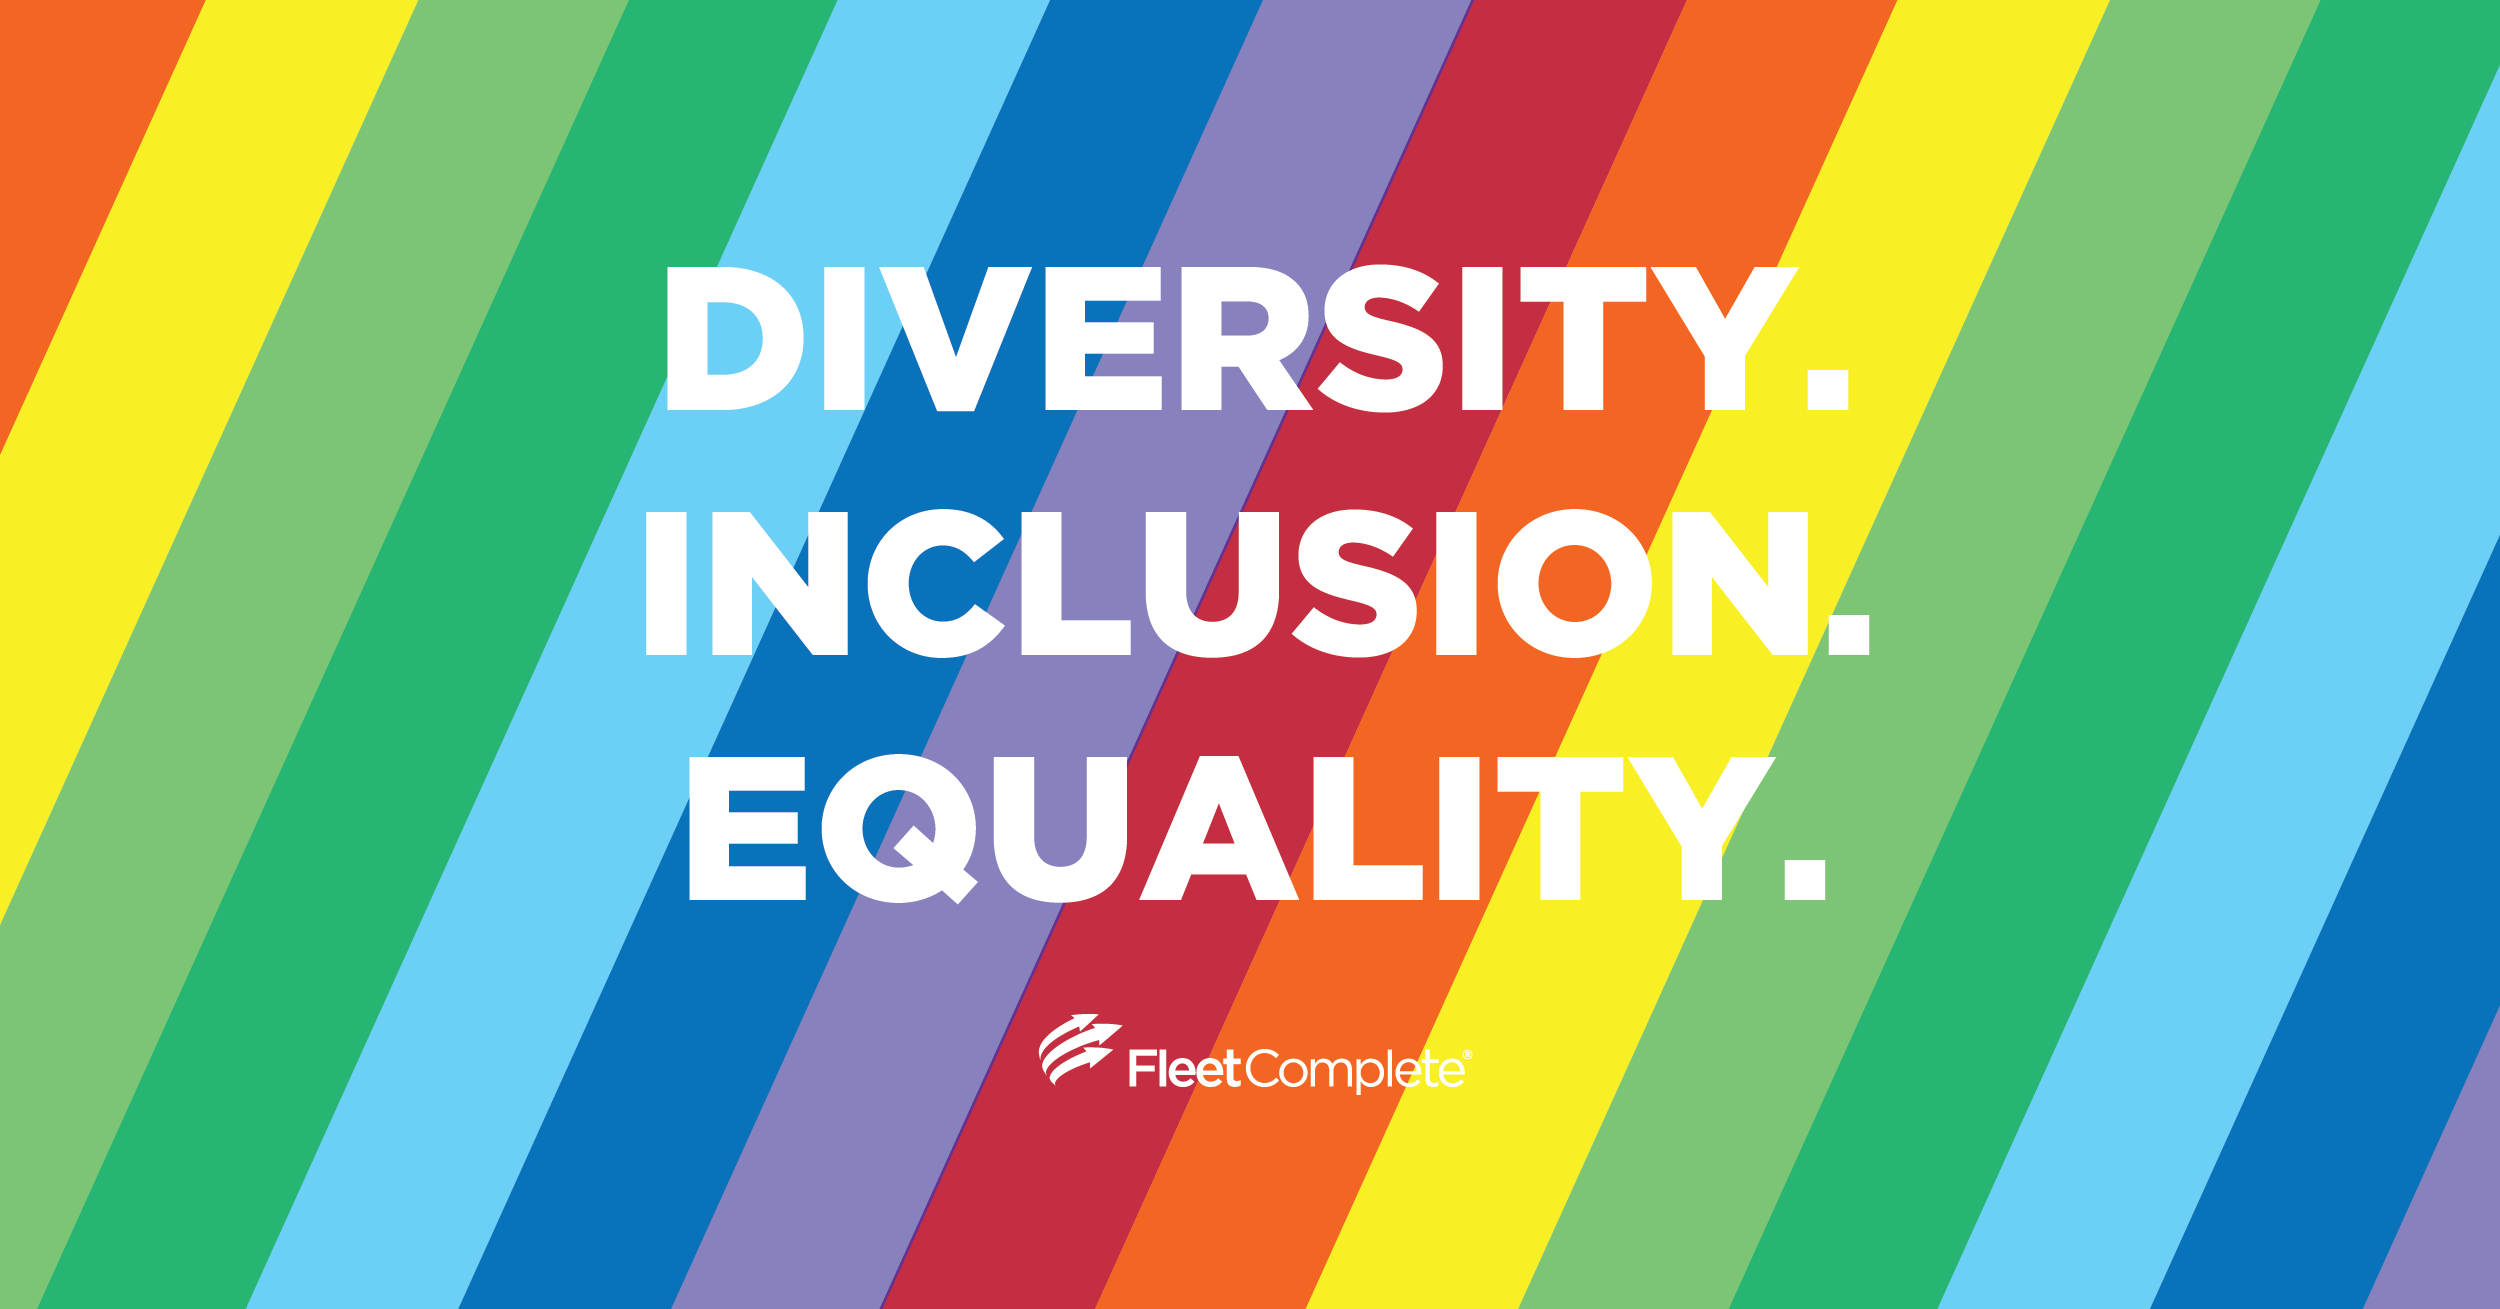 Diversity. Inclusion. Equality on a rainbow background.